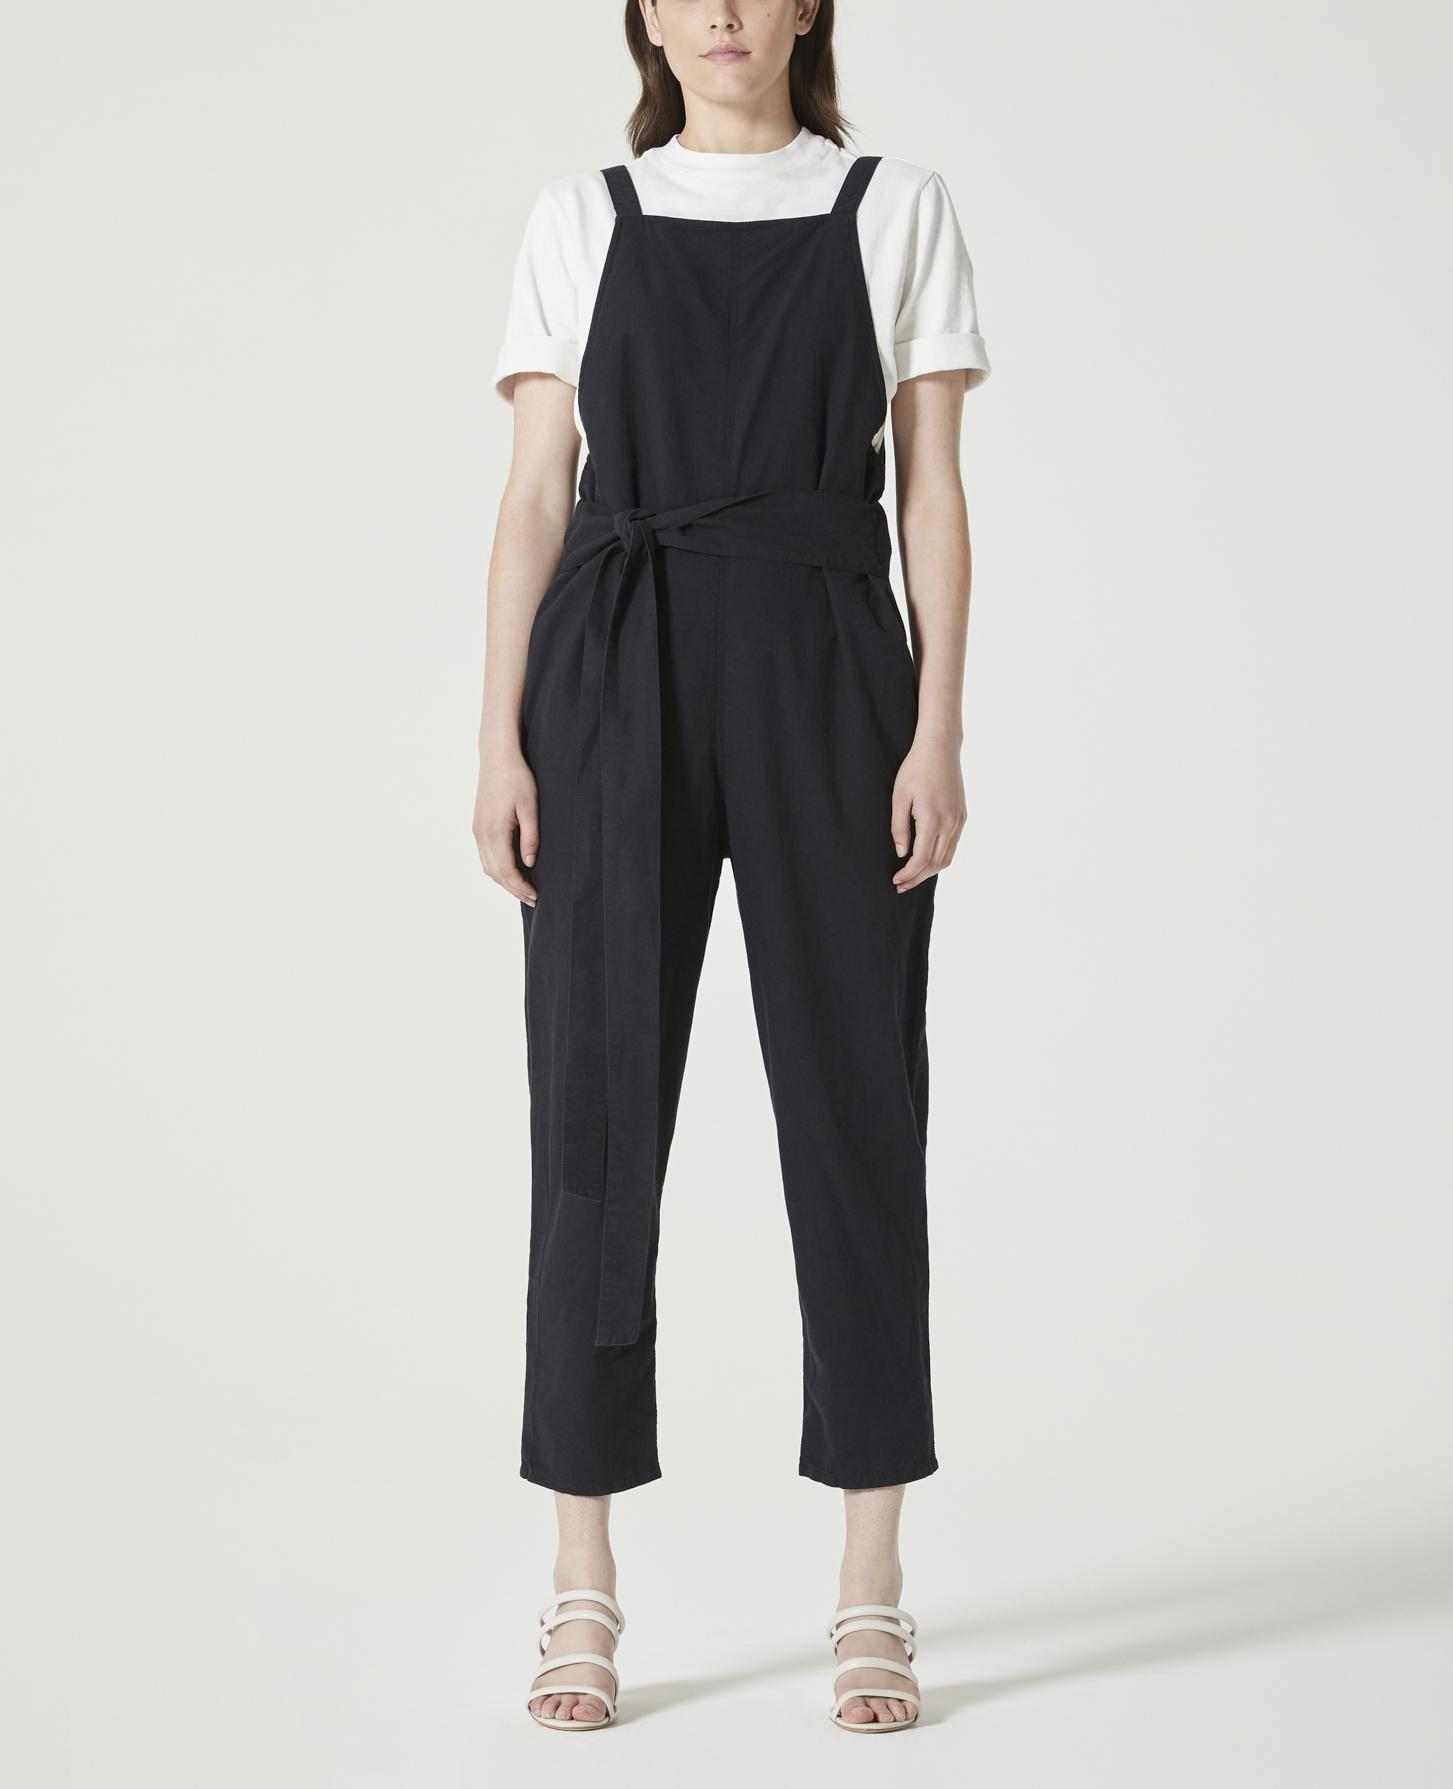 The Darcy Jumpsuit